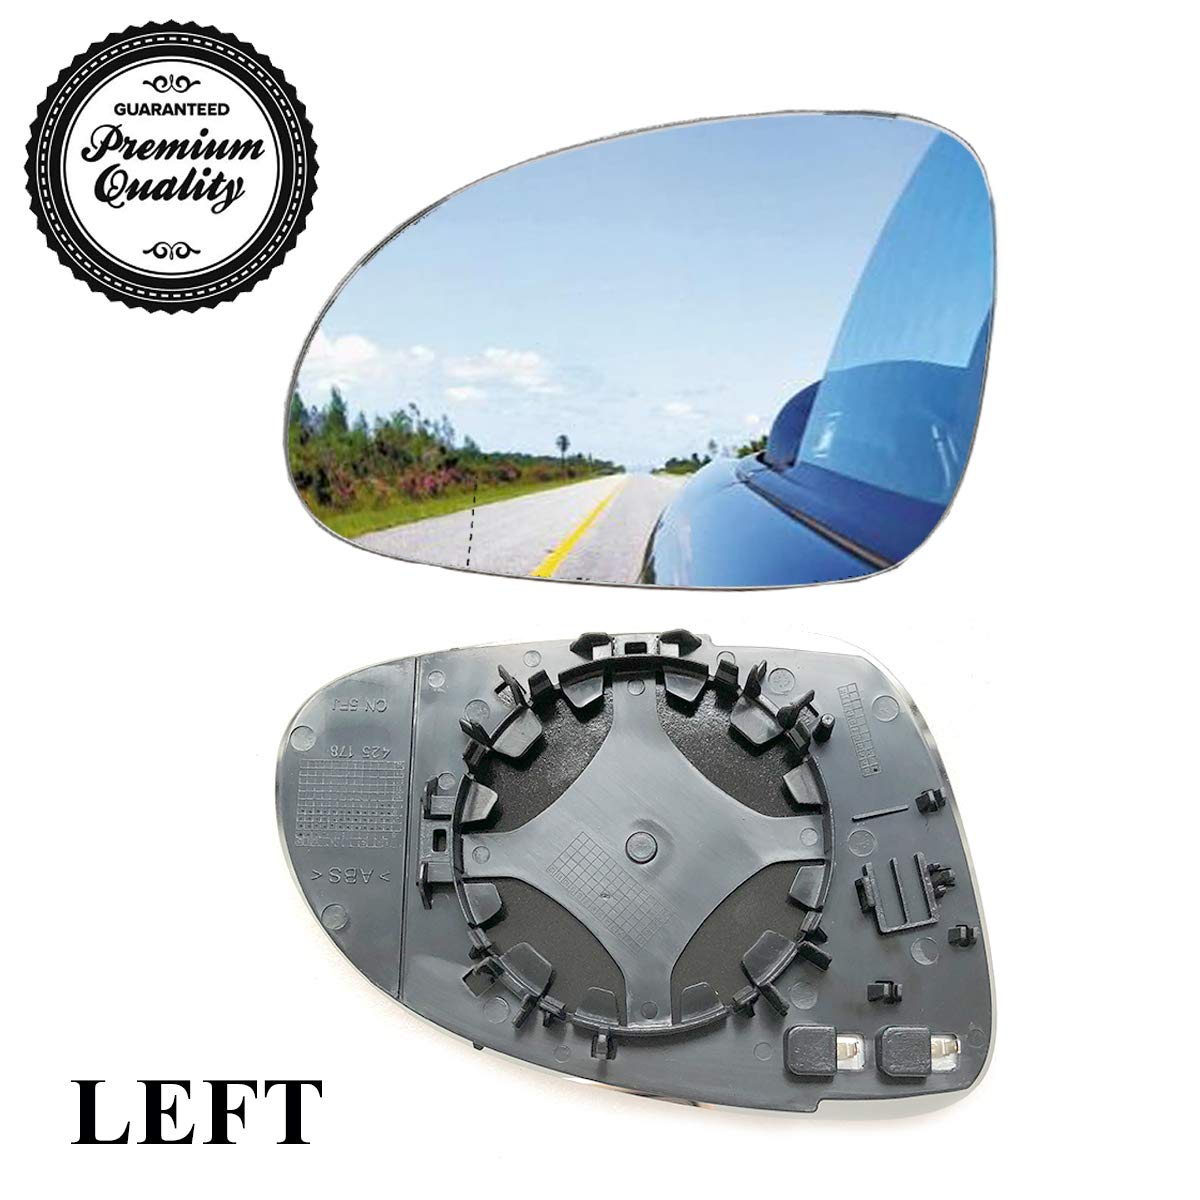 Car Mirror Replacement Glass,Heater and Black Plate Attached for VW Eos, GTI, Jetta, Passat, R32,L&R Jiuzhen Auto Parts